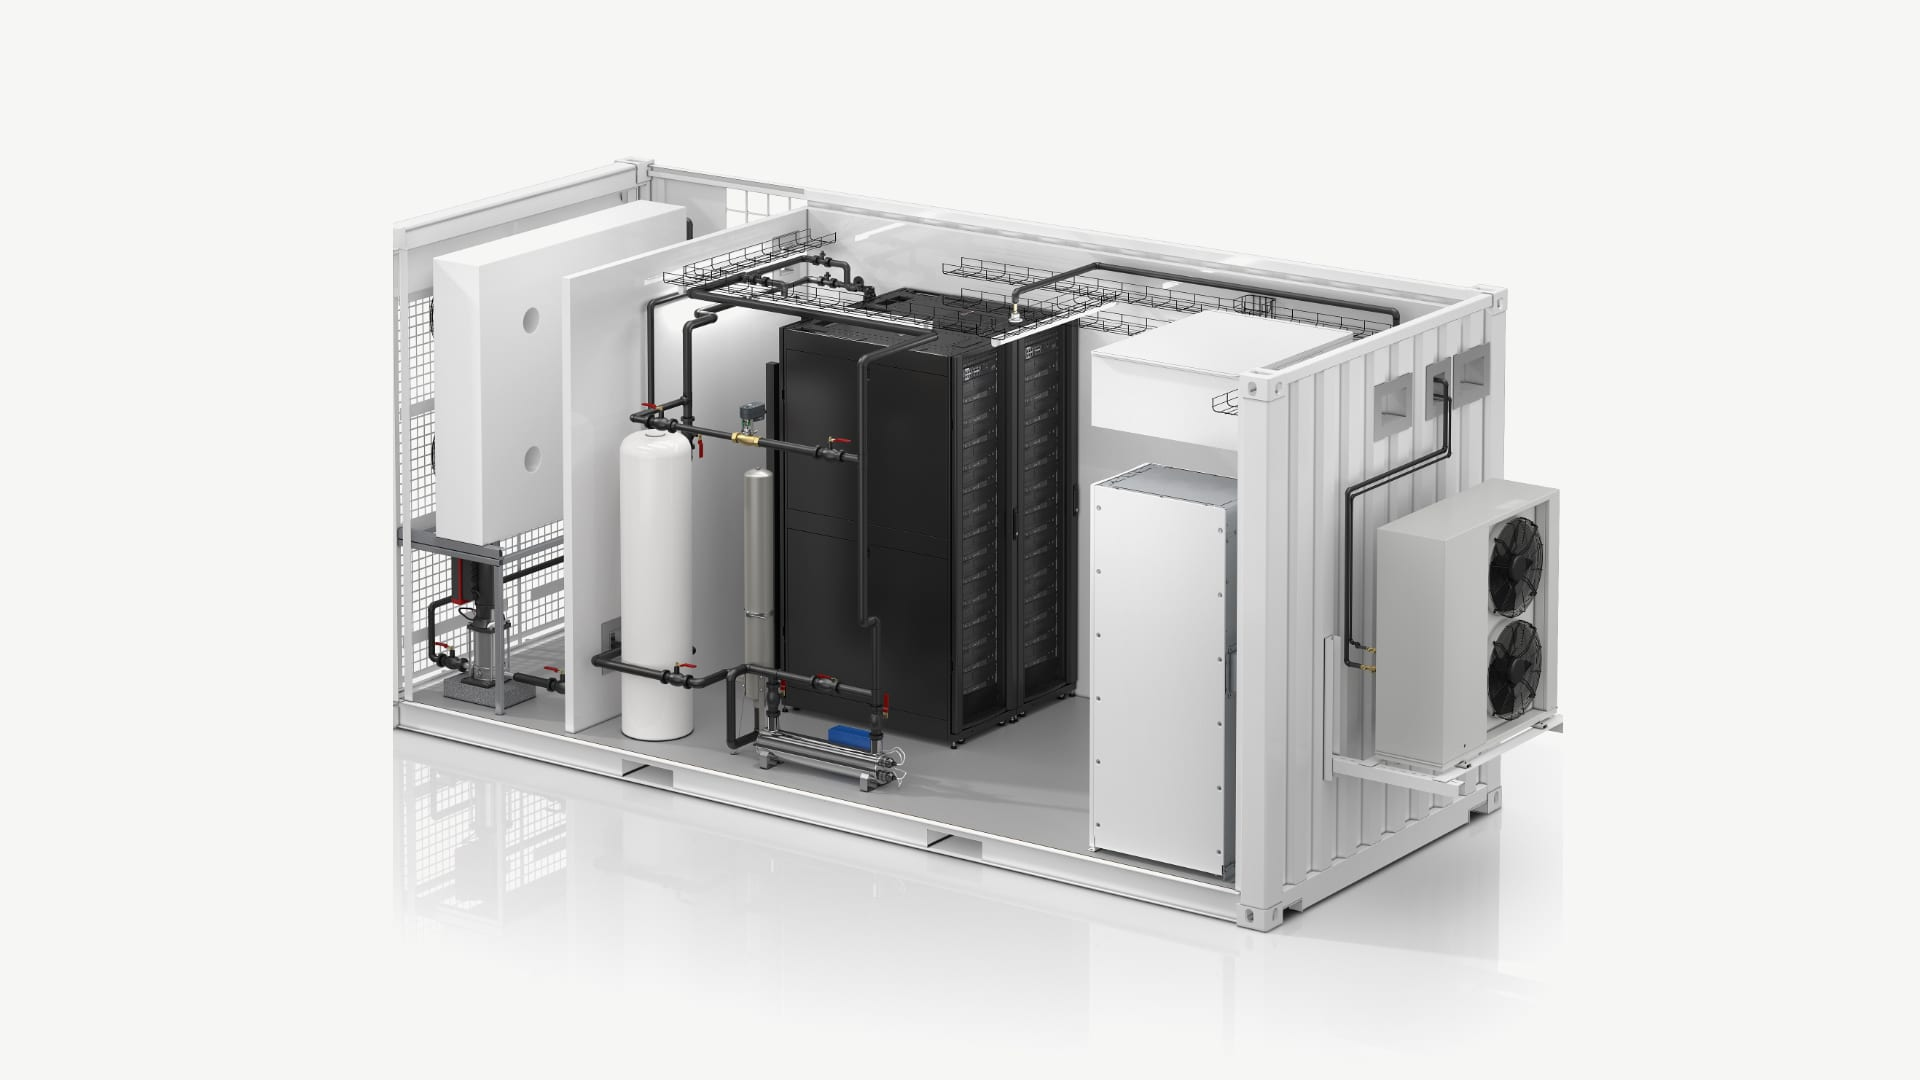 Schneider Electric Announces Industry-First, All-In-One Liquid Cooled, EcoStruxure™ Modular Data Center